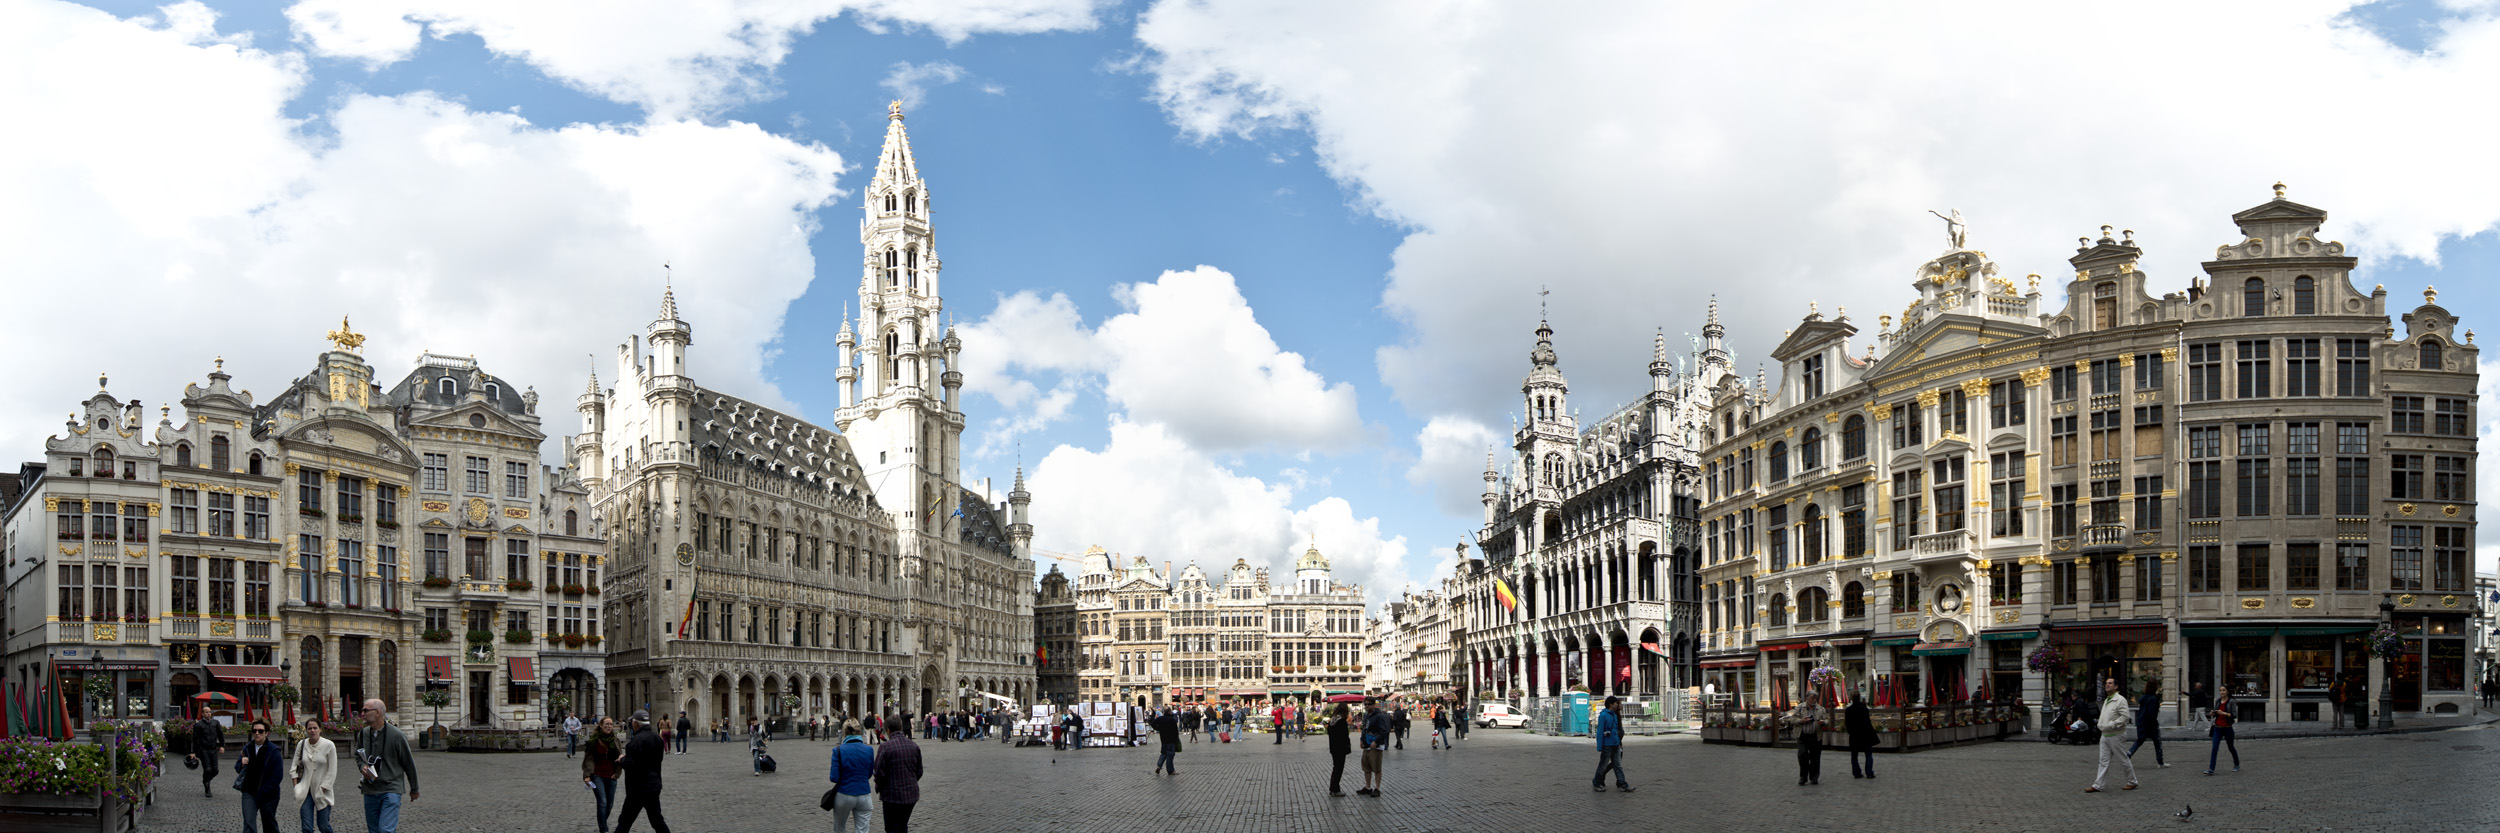 Brussels_Panorama_(8293237603)[1]